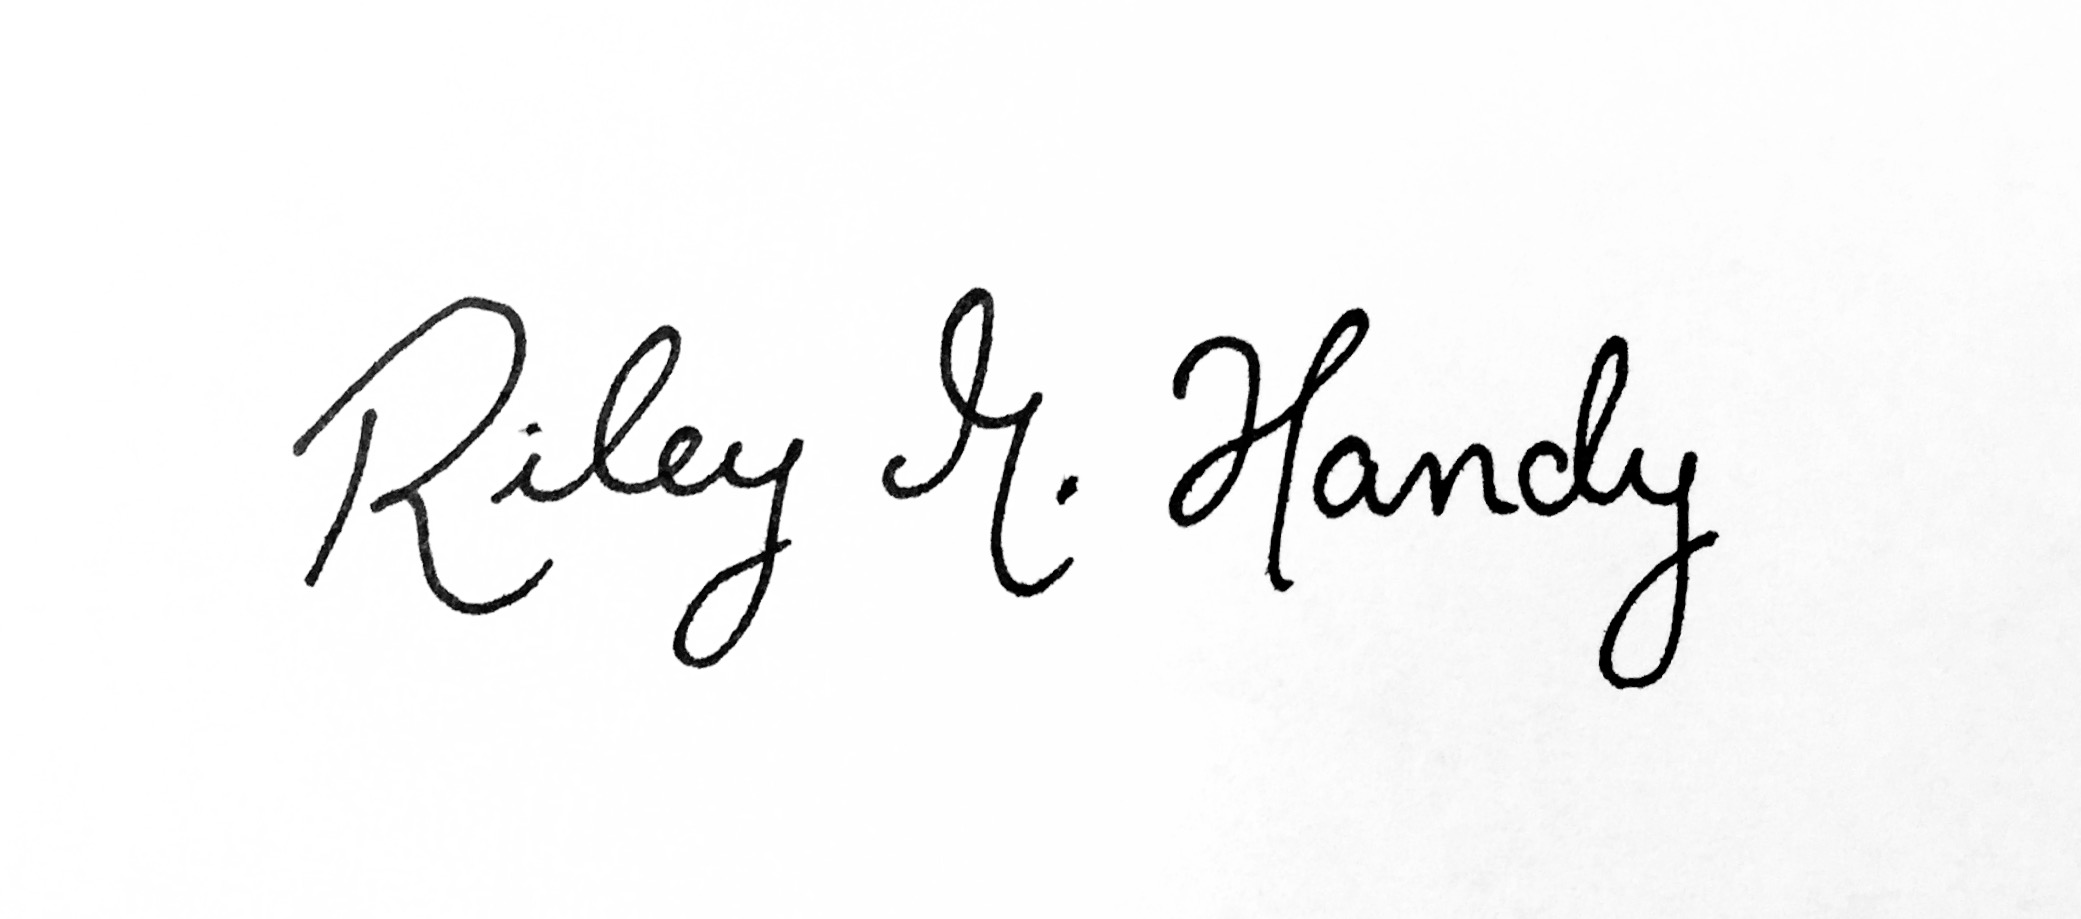 Riley marie Handy Signature